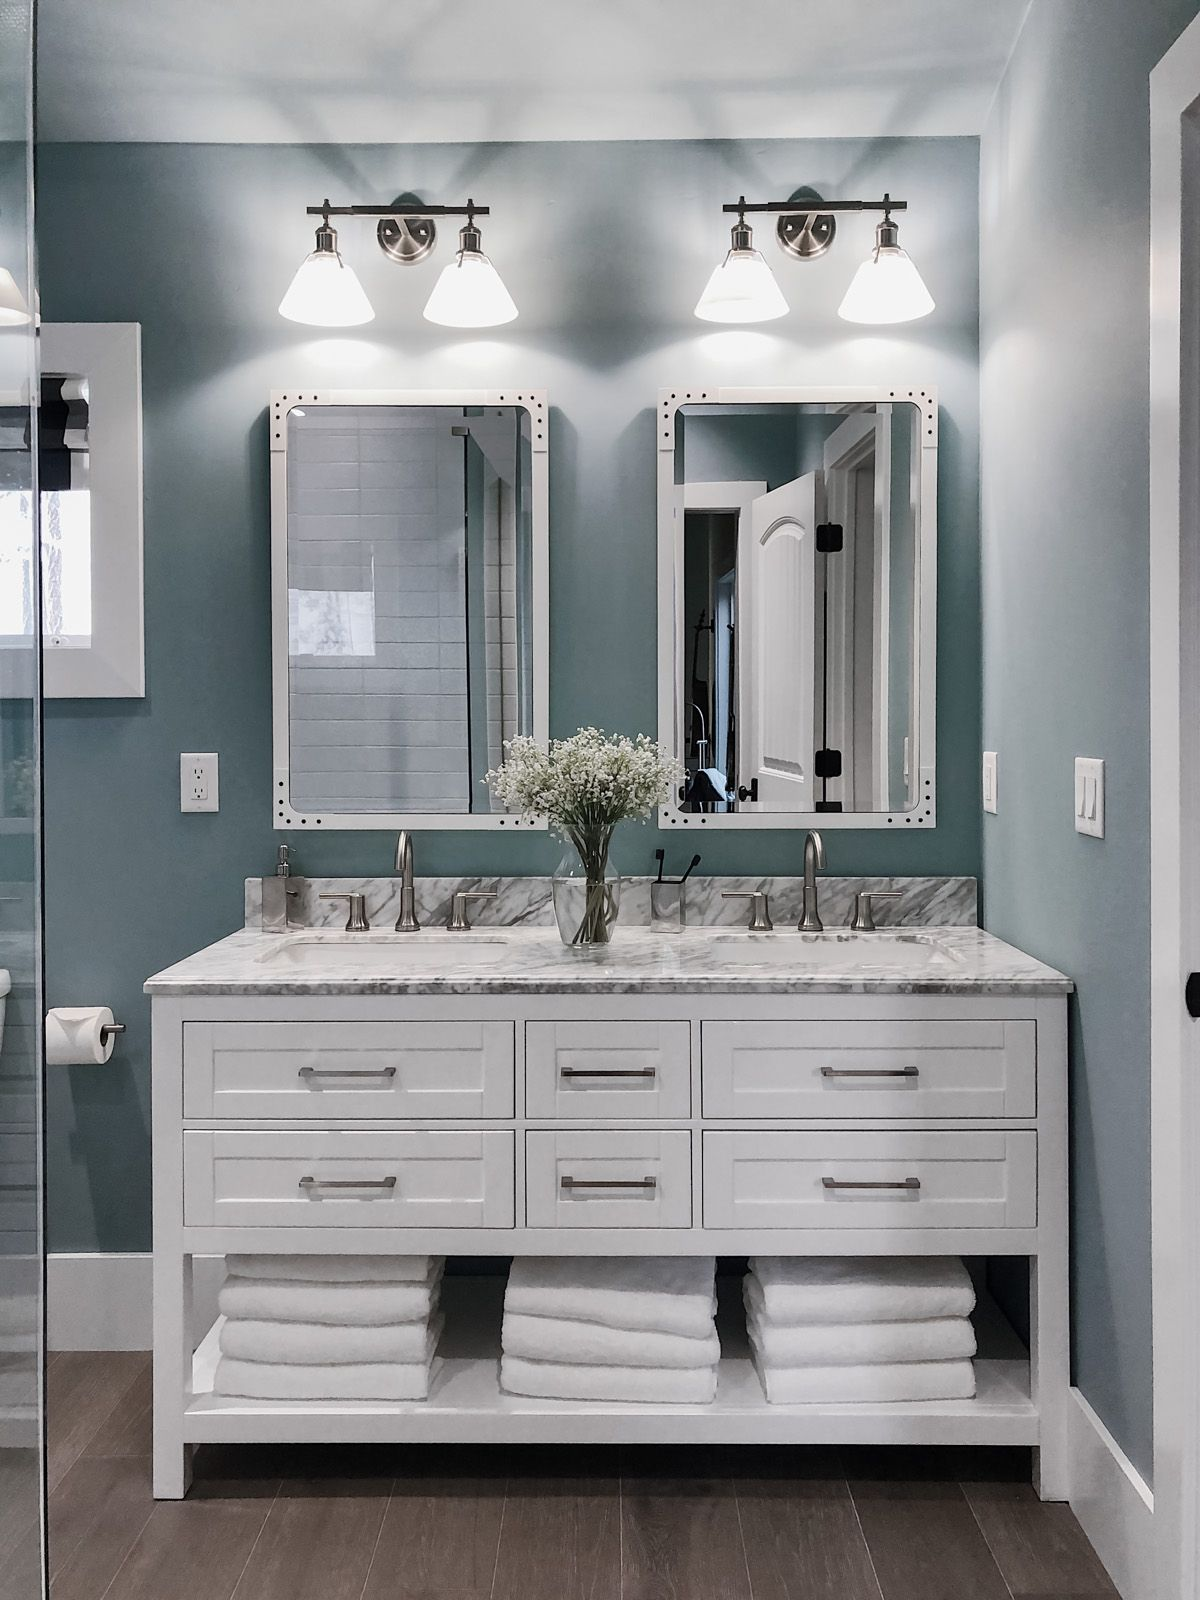 2019 Hgtv Dream Home Tour Dream Bathrooms Small Bathroom